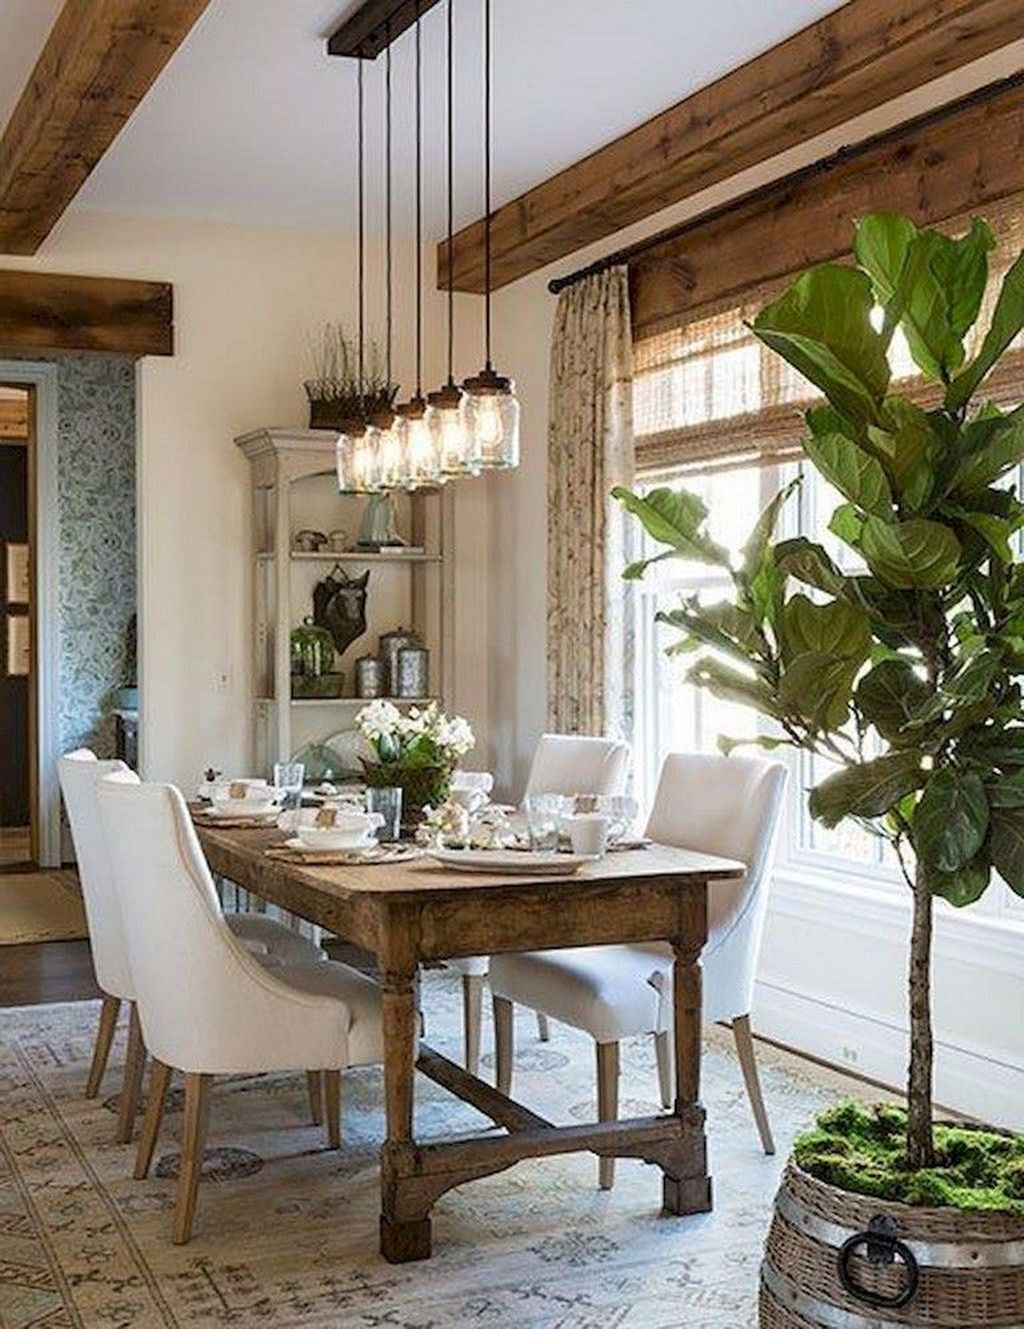 Popular Farmhouse Dining Room Design Ideas Trend 2019 35